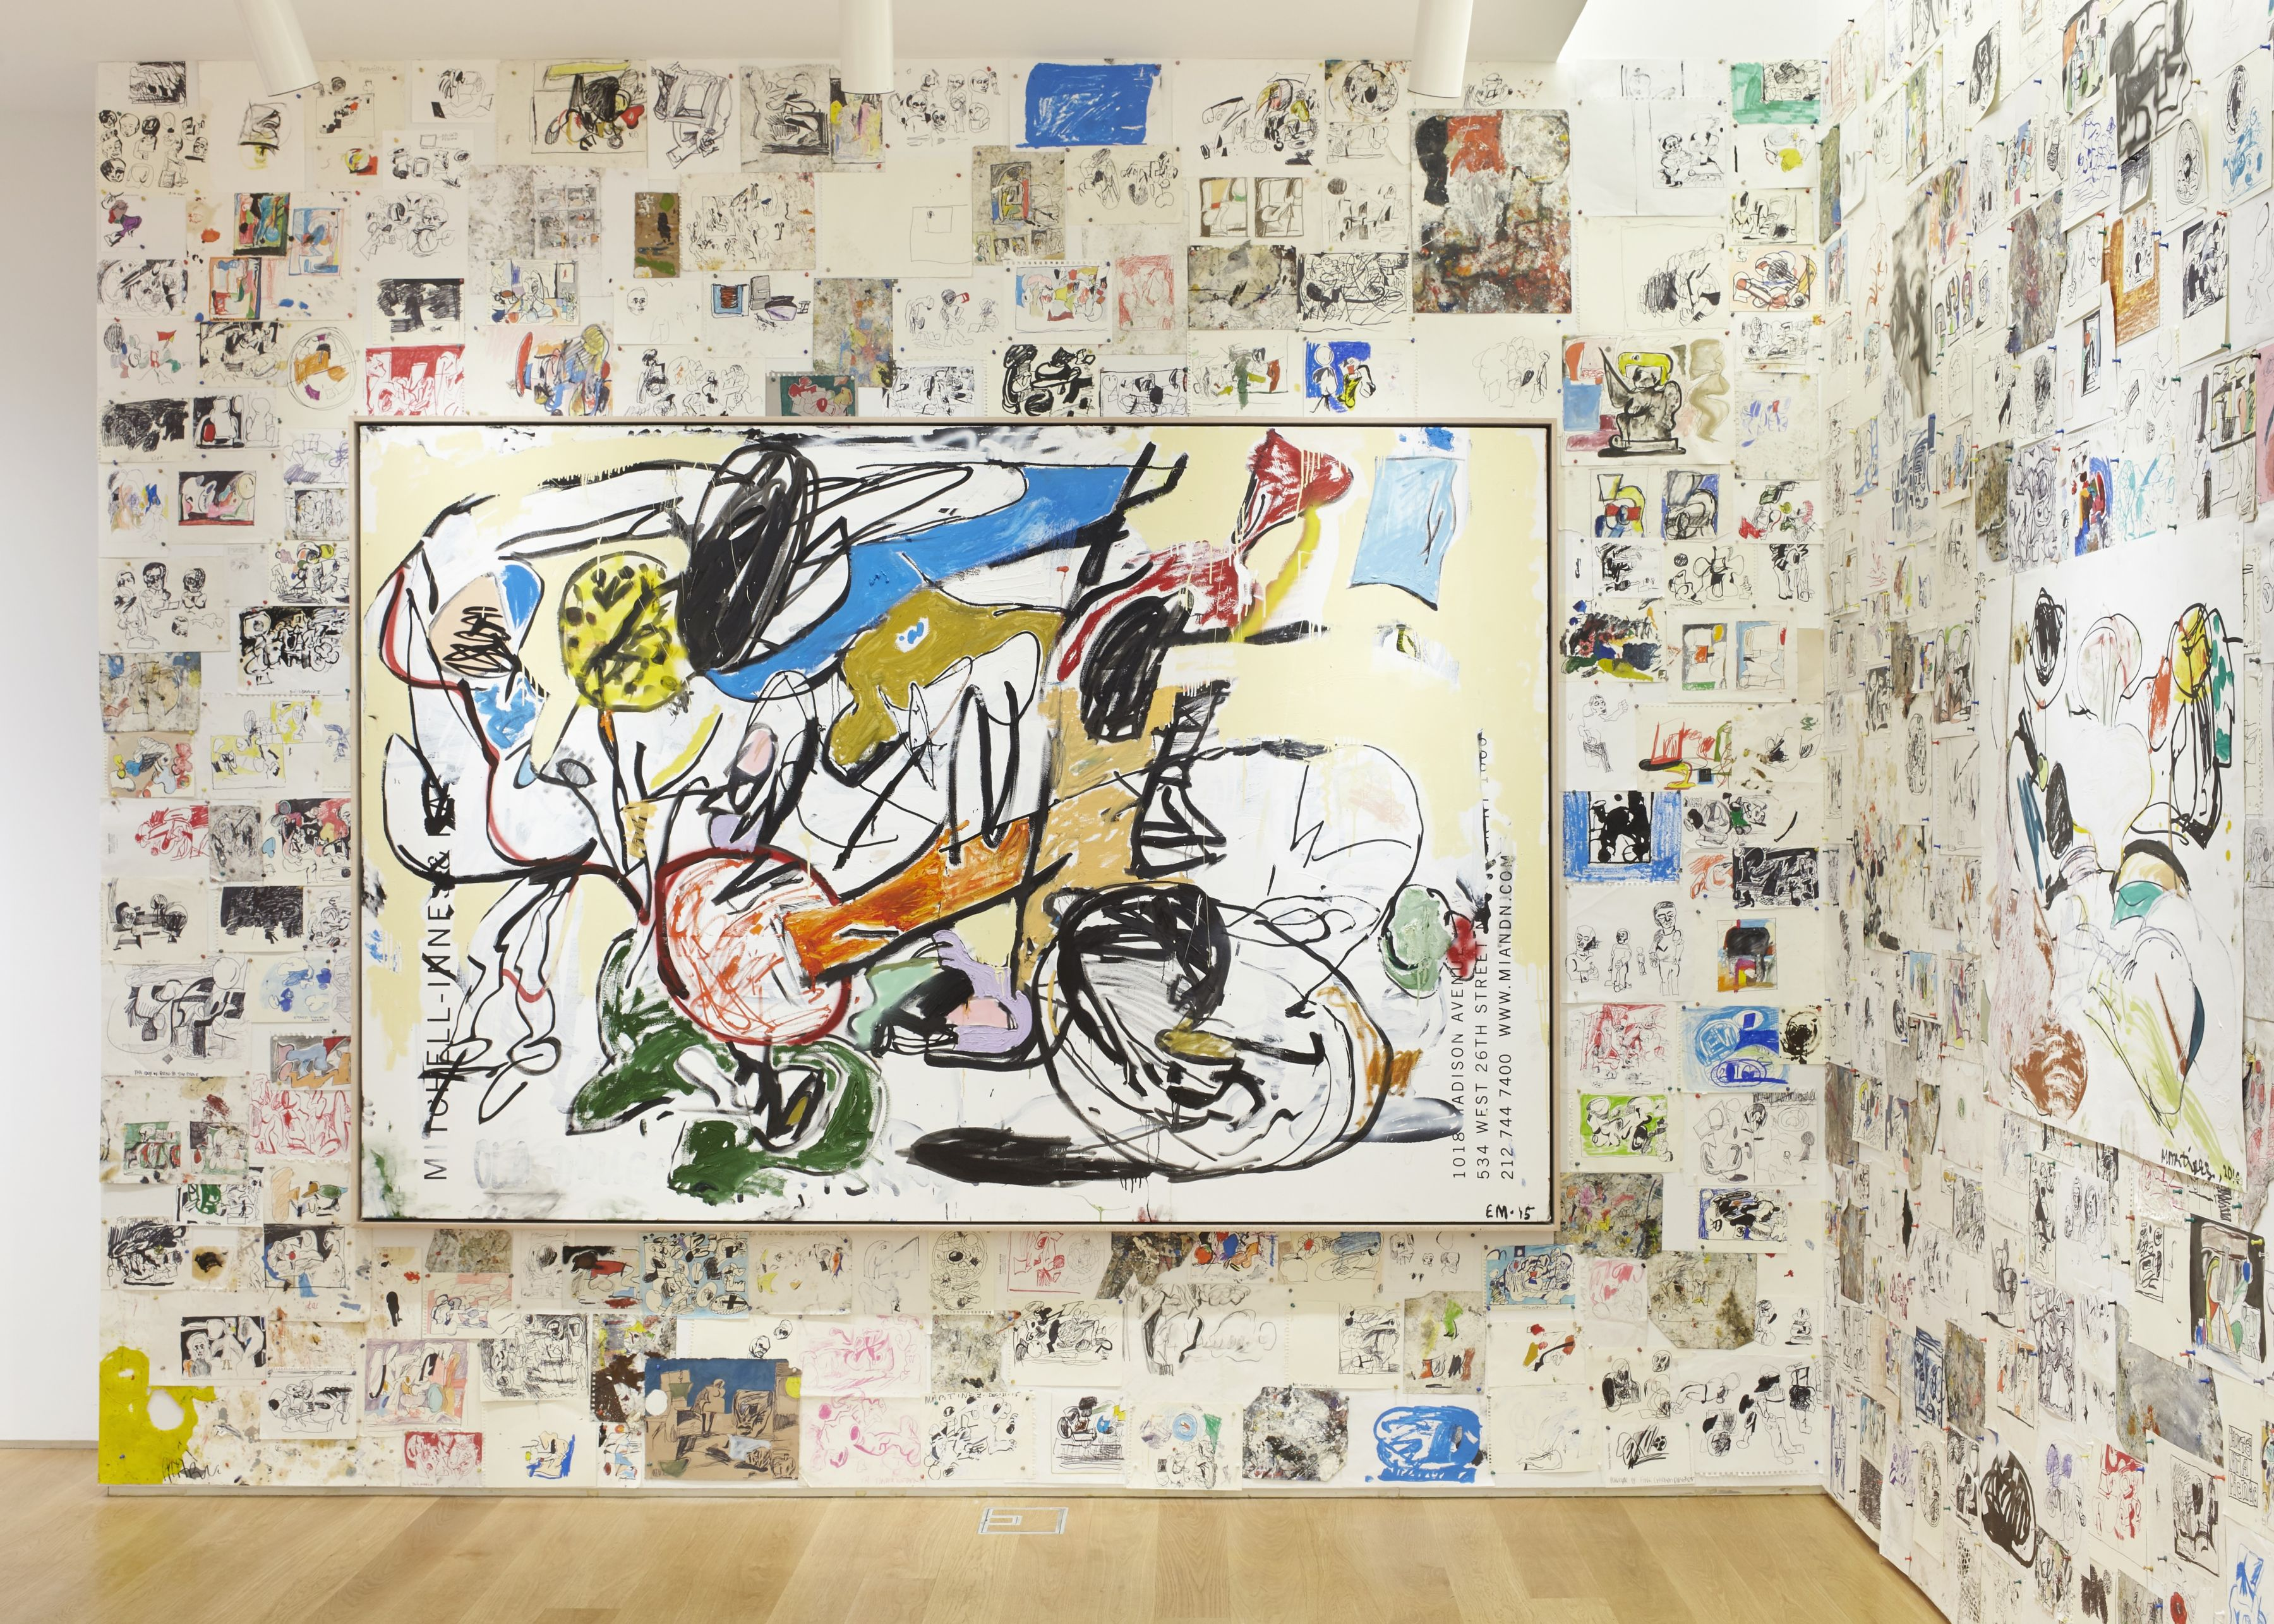 EDDIE MARTINEZ Installation view ofStudio Wallat The Drawing Center, New York, NY, 2017